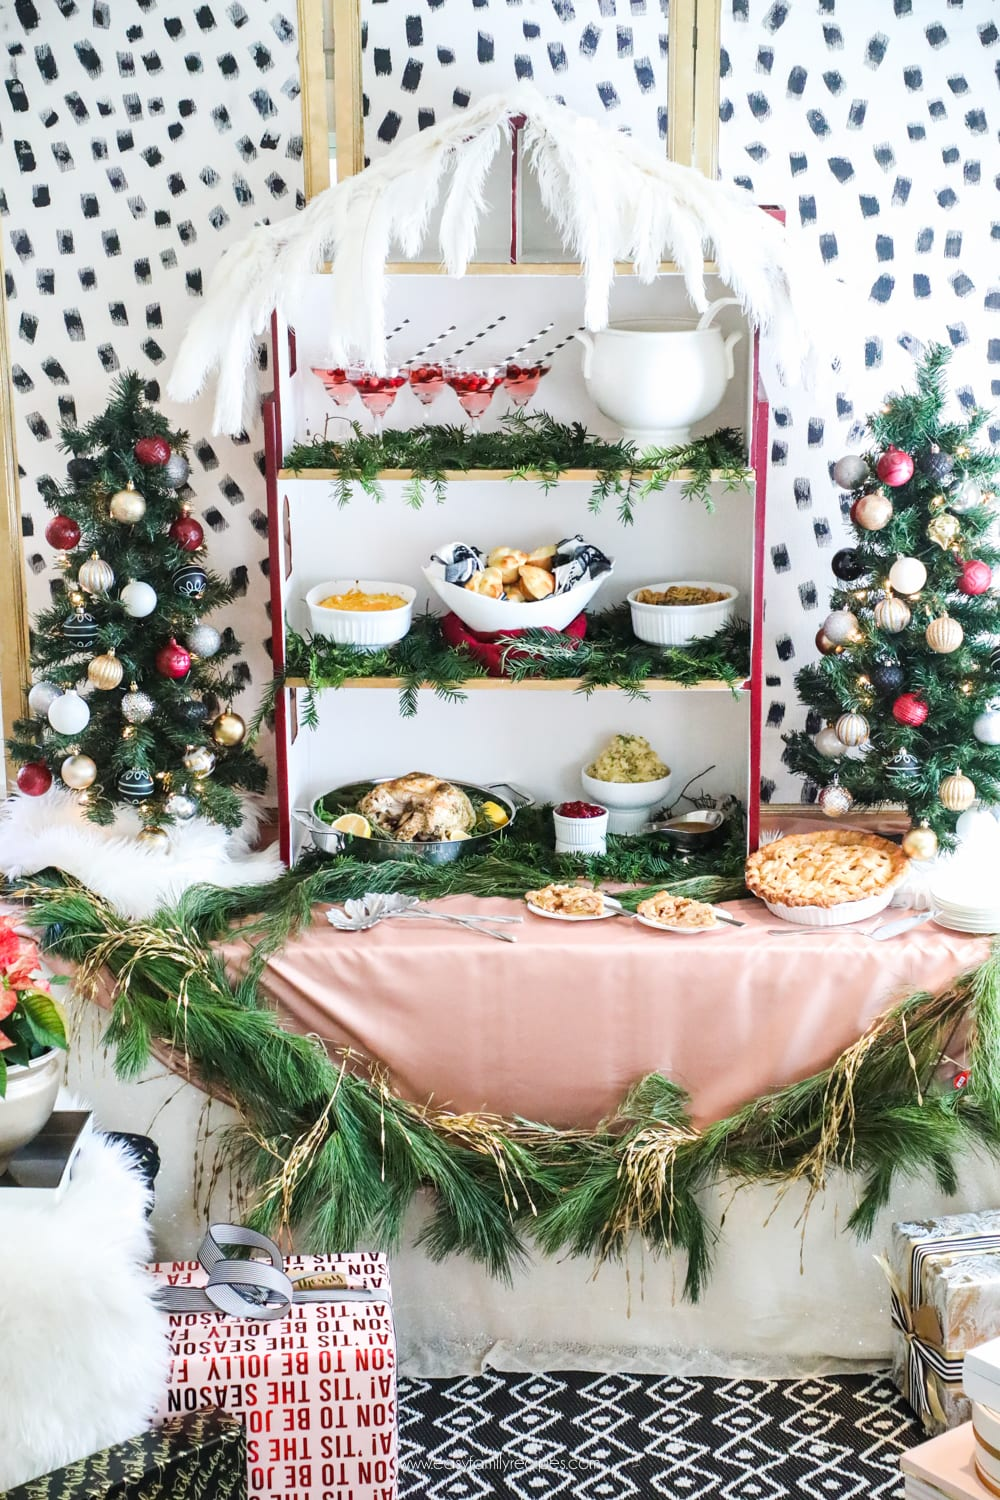 Holiday Party Buffet Table.  It's a barbie house! Looking for inspiration for Christmas Tree inspiration?  You have got to see this || Jeweled Interiors, Holiday, Home Tour, Burgundy, wine, Blush, Christmas, Decor, decoration, Ideas, Tips,  Christmas, holiday, tree,  pink, DIY, inspiration, red, maroon, ostrich feathers, poinsettia, glam, chic, peach, gold, black, white